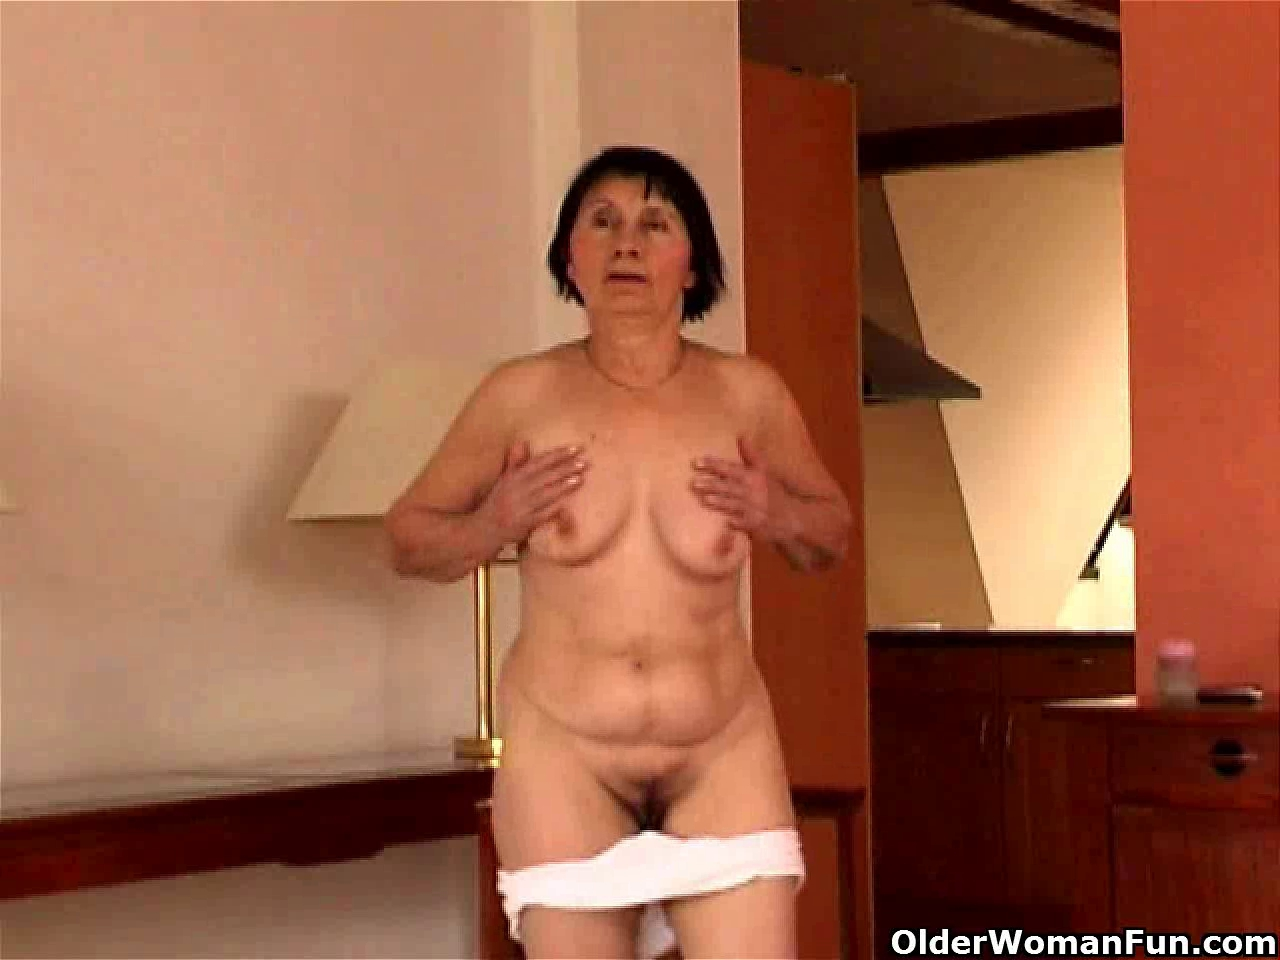 Over 70 granny does striptease and masturbates Teen wants to be cheerleader Bear Necessities